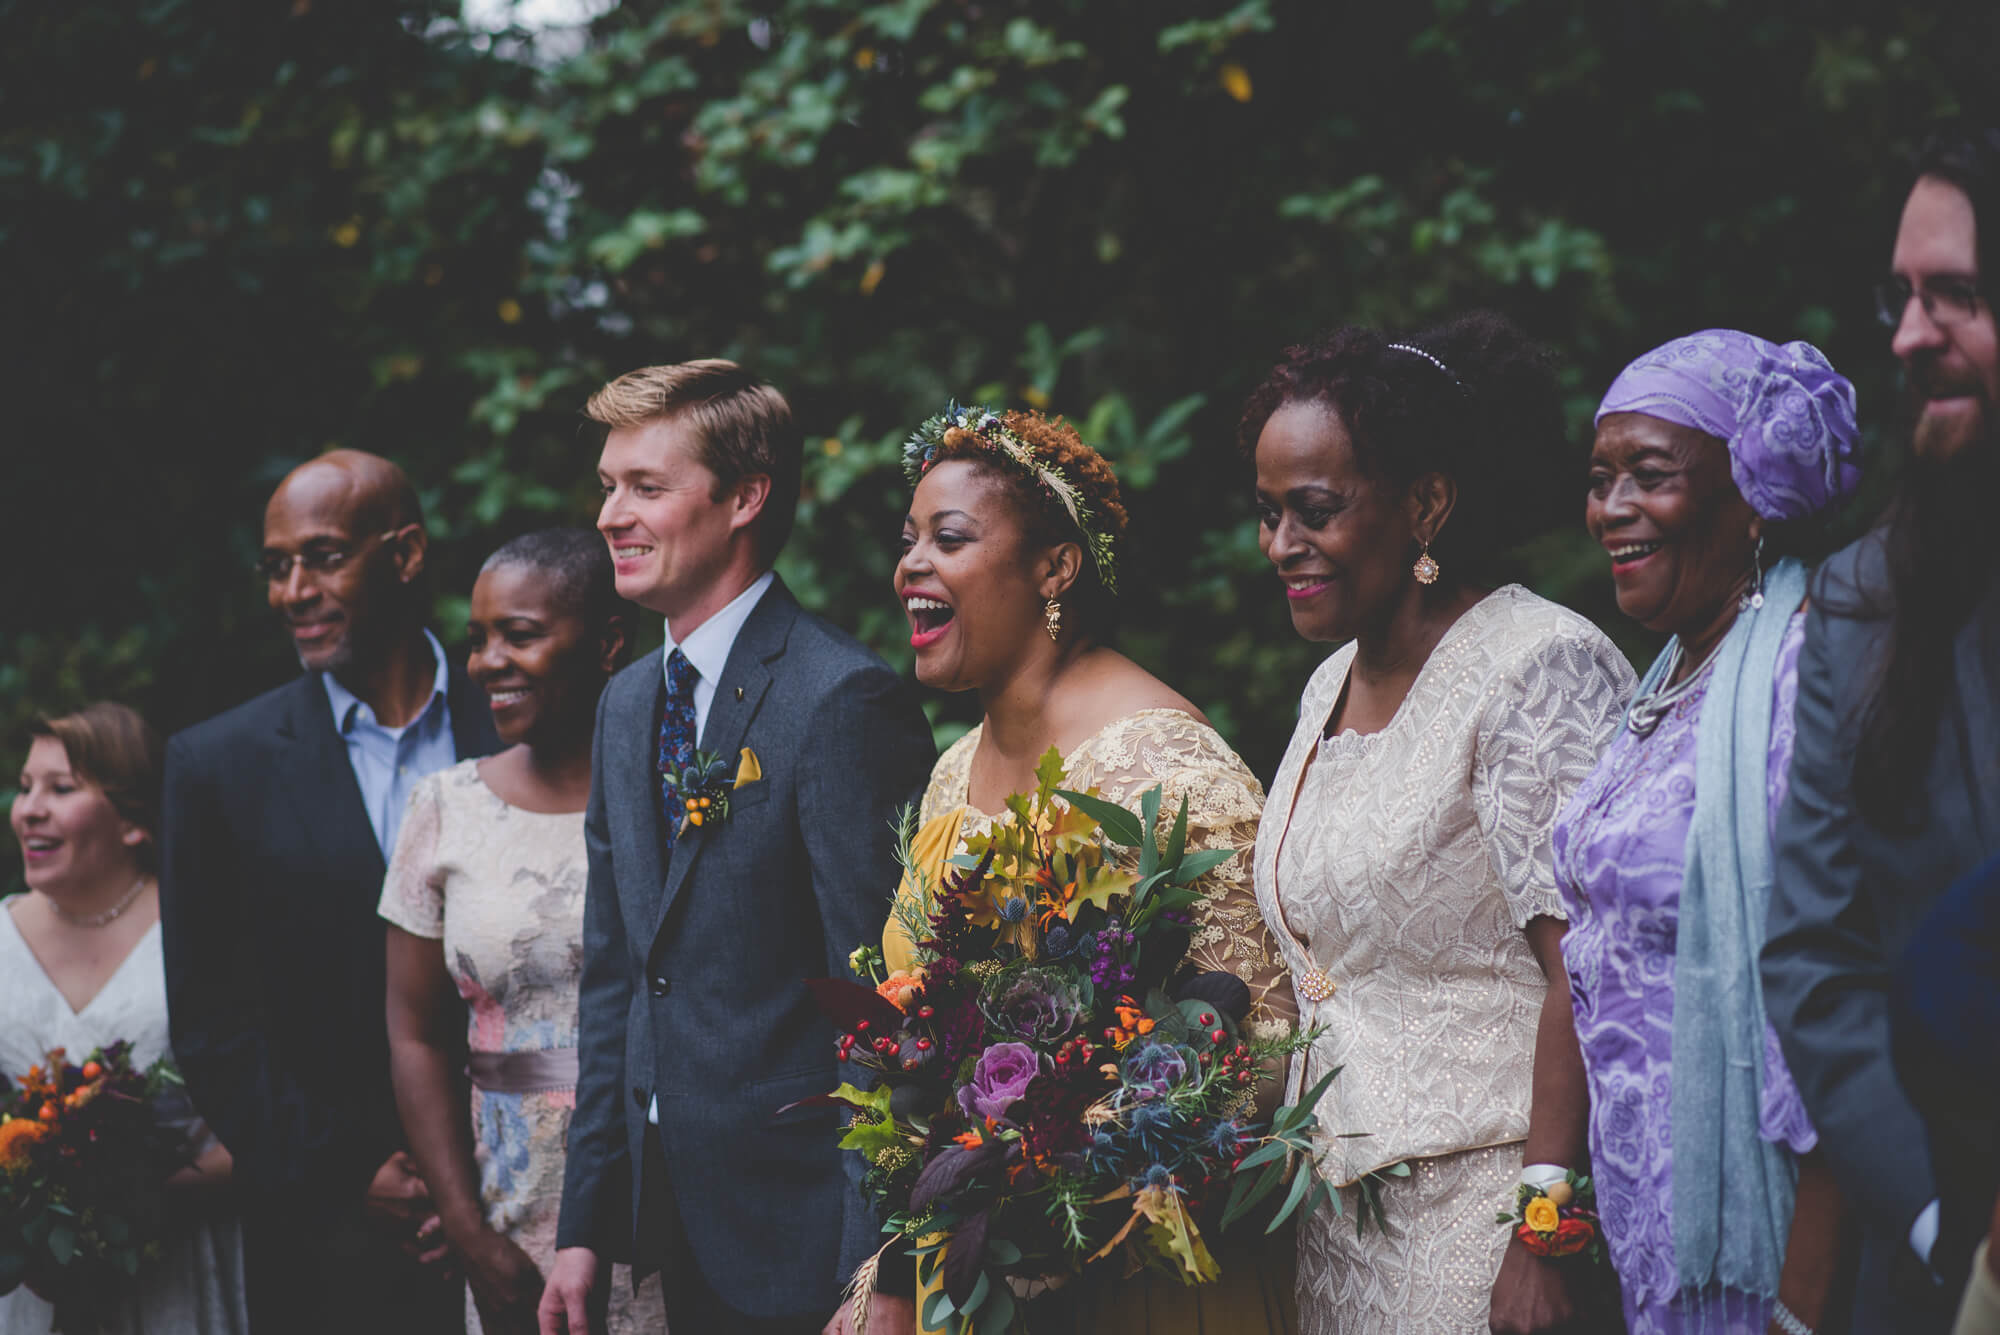 bride and groom laughing with bride's family during family formals at wedding